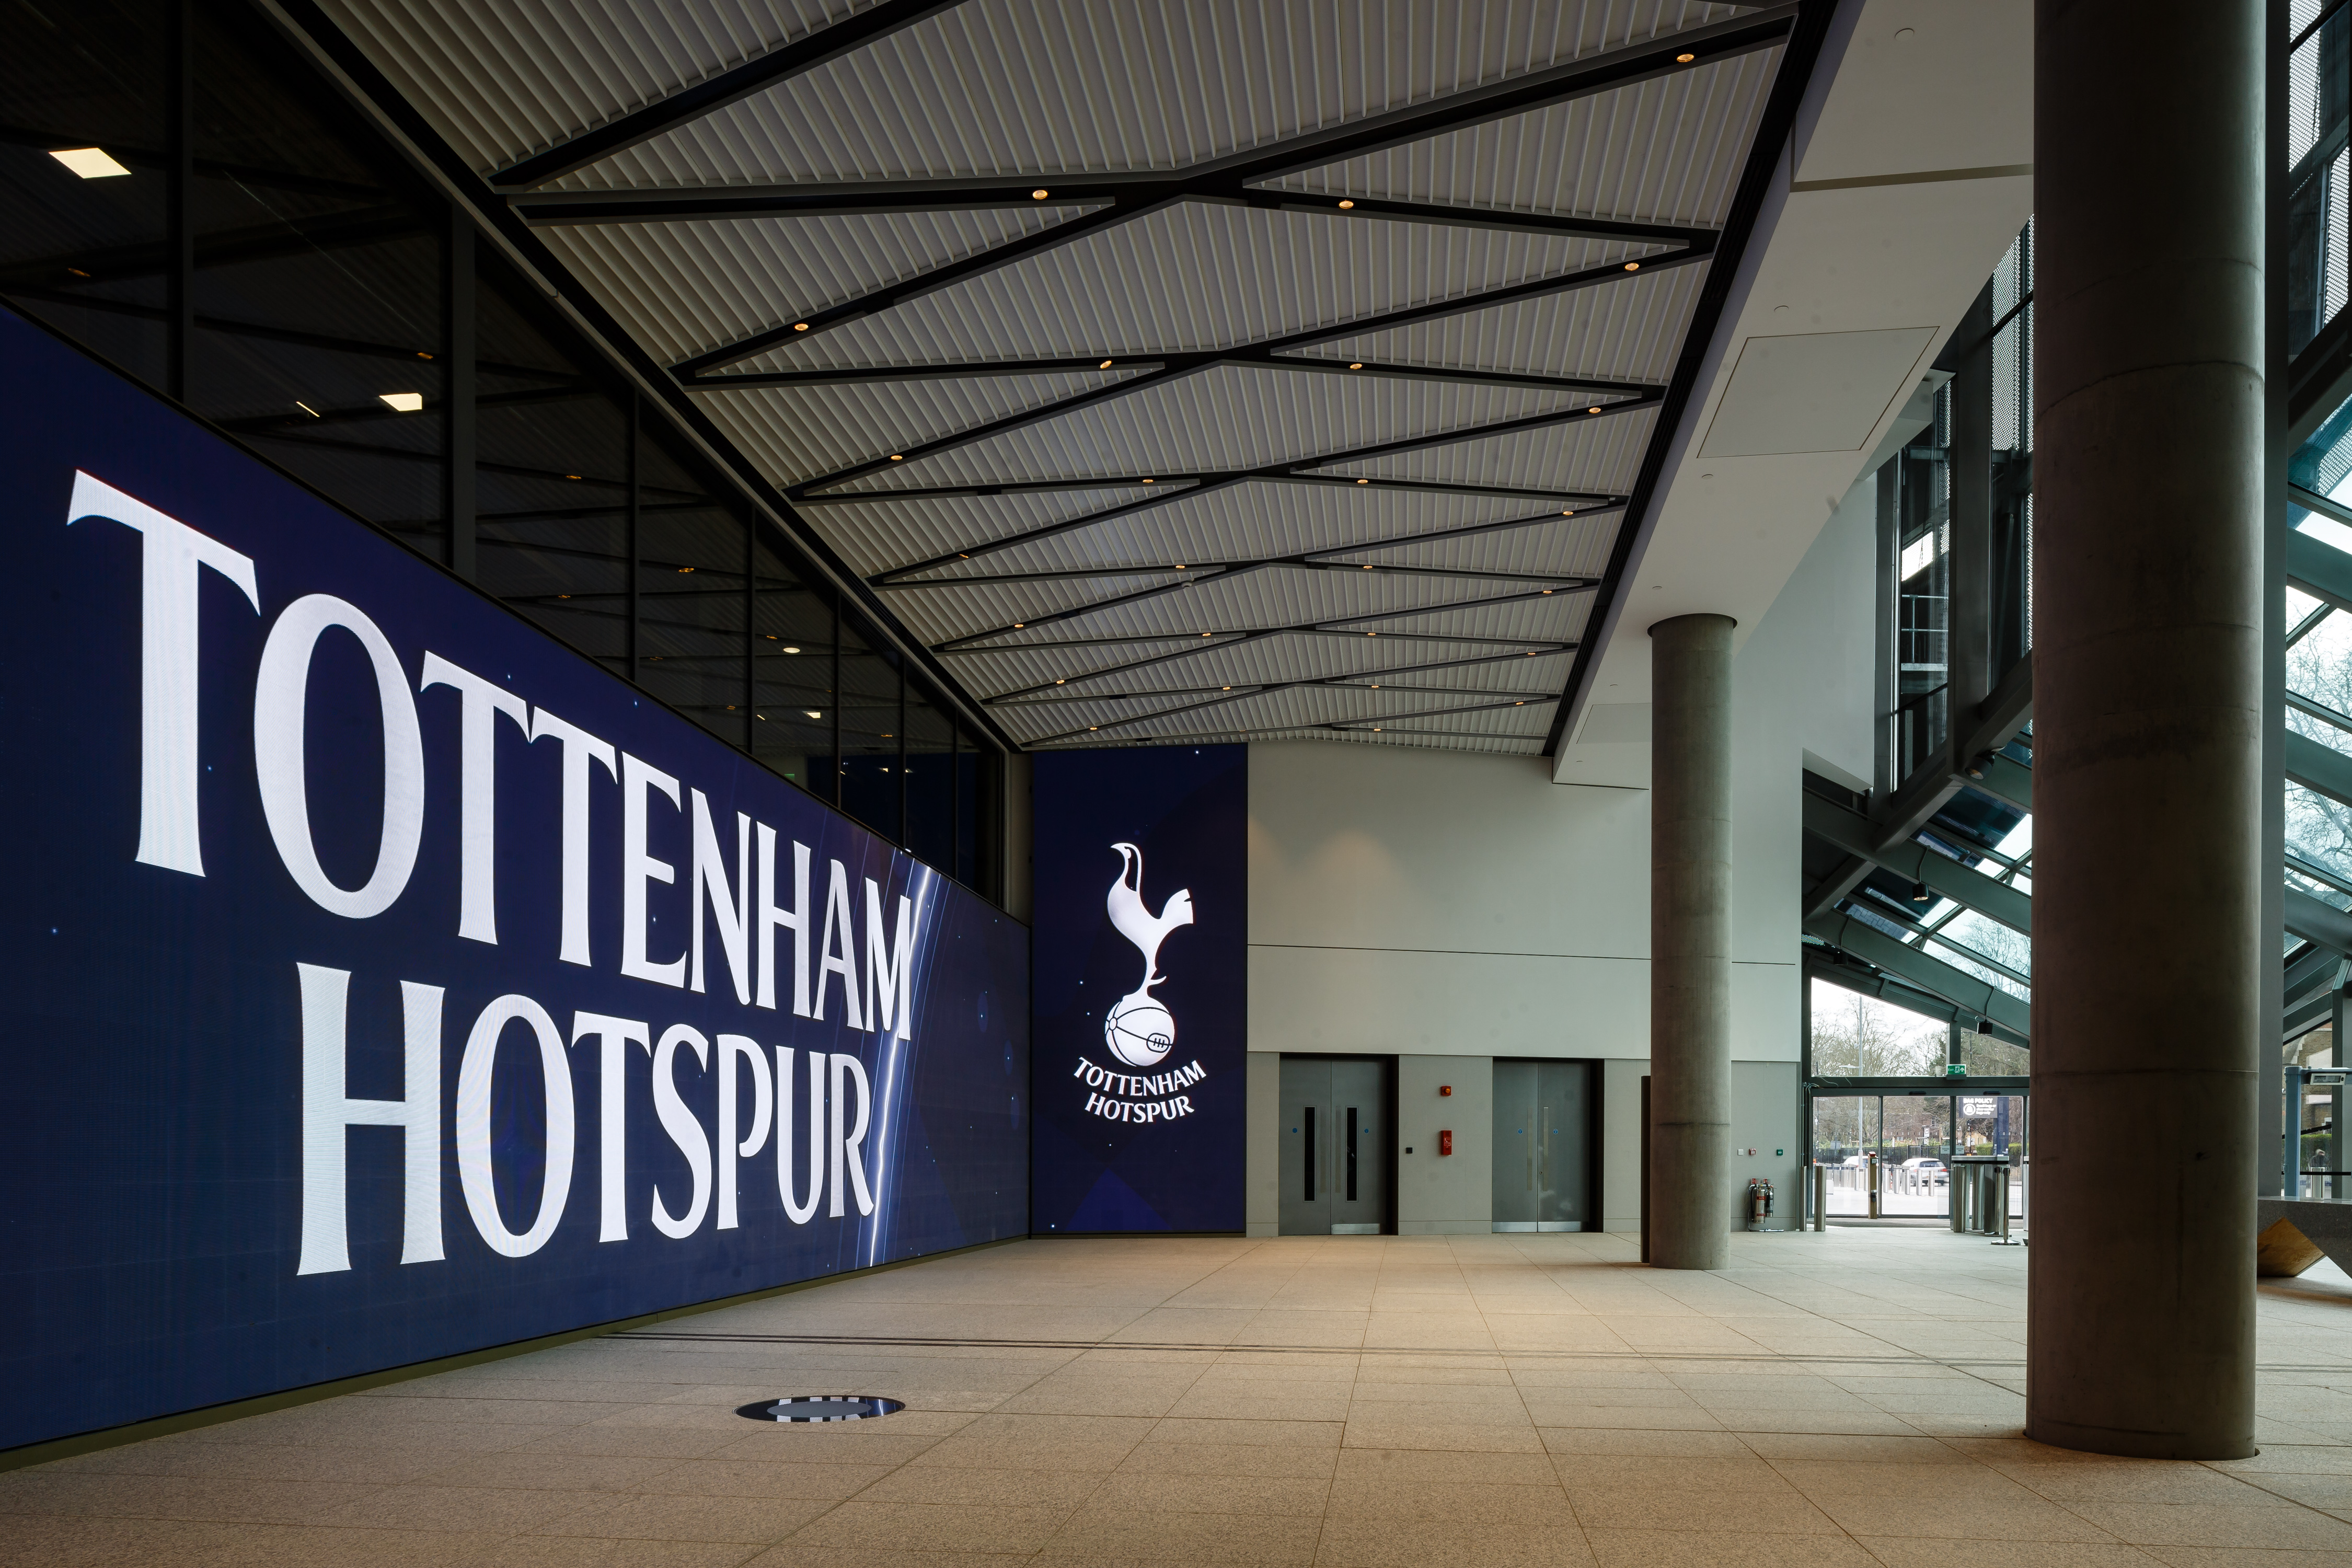 <p> A general view of the exterior of the new Tottenham Hotspur Stadium  on March 13, 2019 in London, England. (Photo by Tottenham Hotspur FC/Tottenham Hotspur FC via Getty Images)</p>